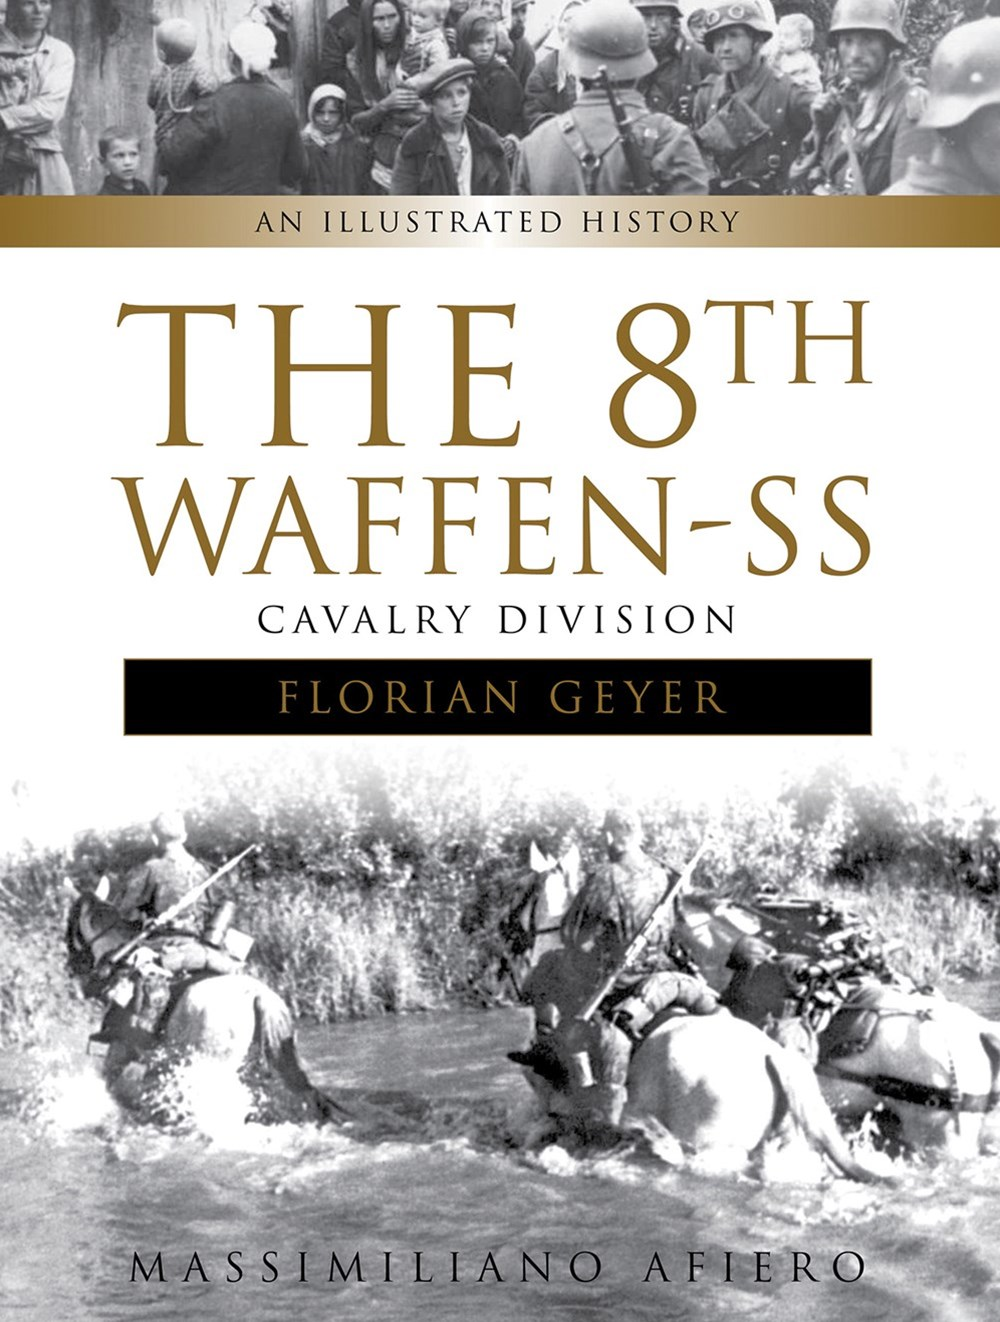 8th Waffen-SS Cavalry Division &quote;Florian Geyer&quote;: An Illustrated History